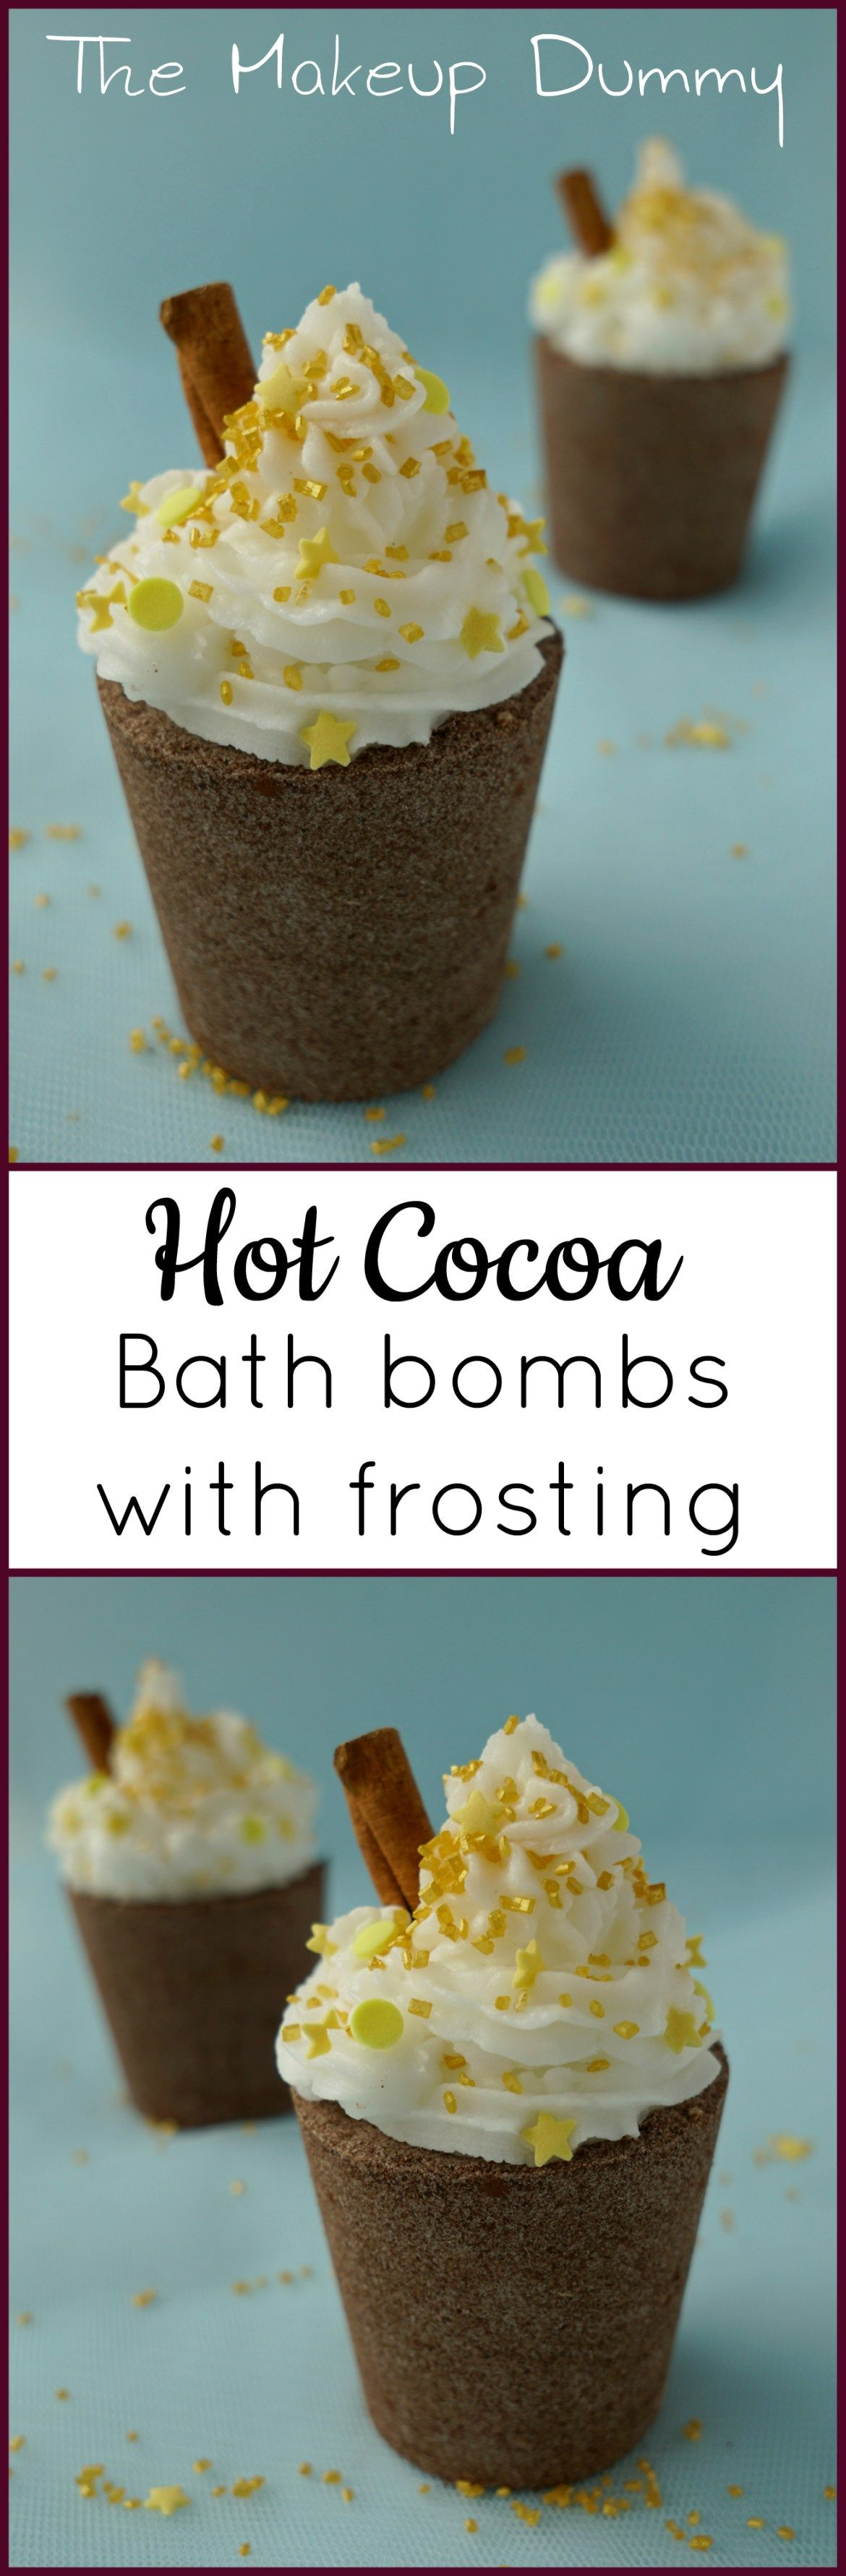 DIY Hot Cocoa Bath Bombs with Frosting (With images